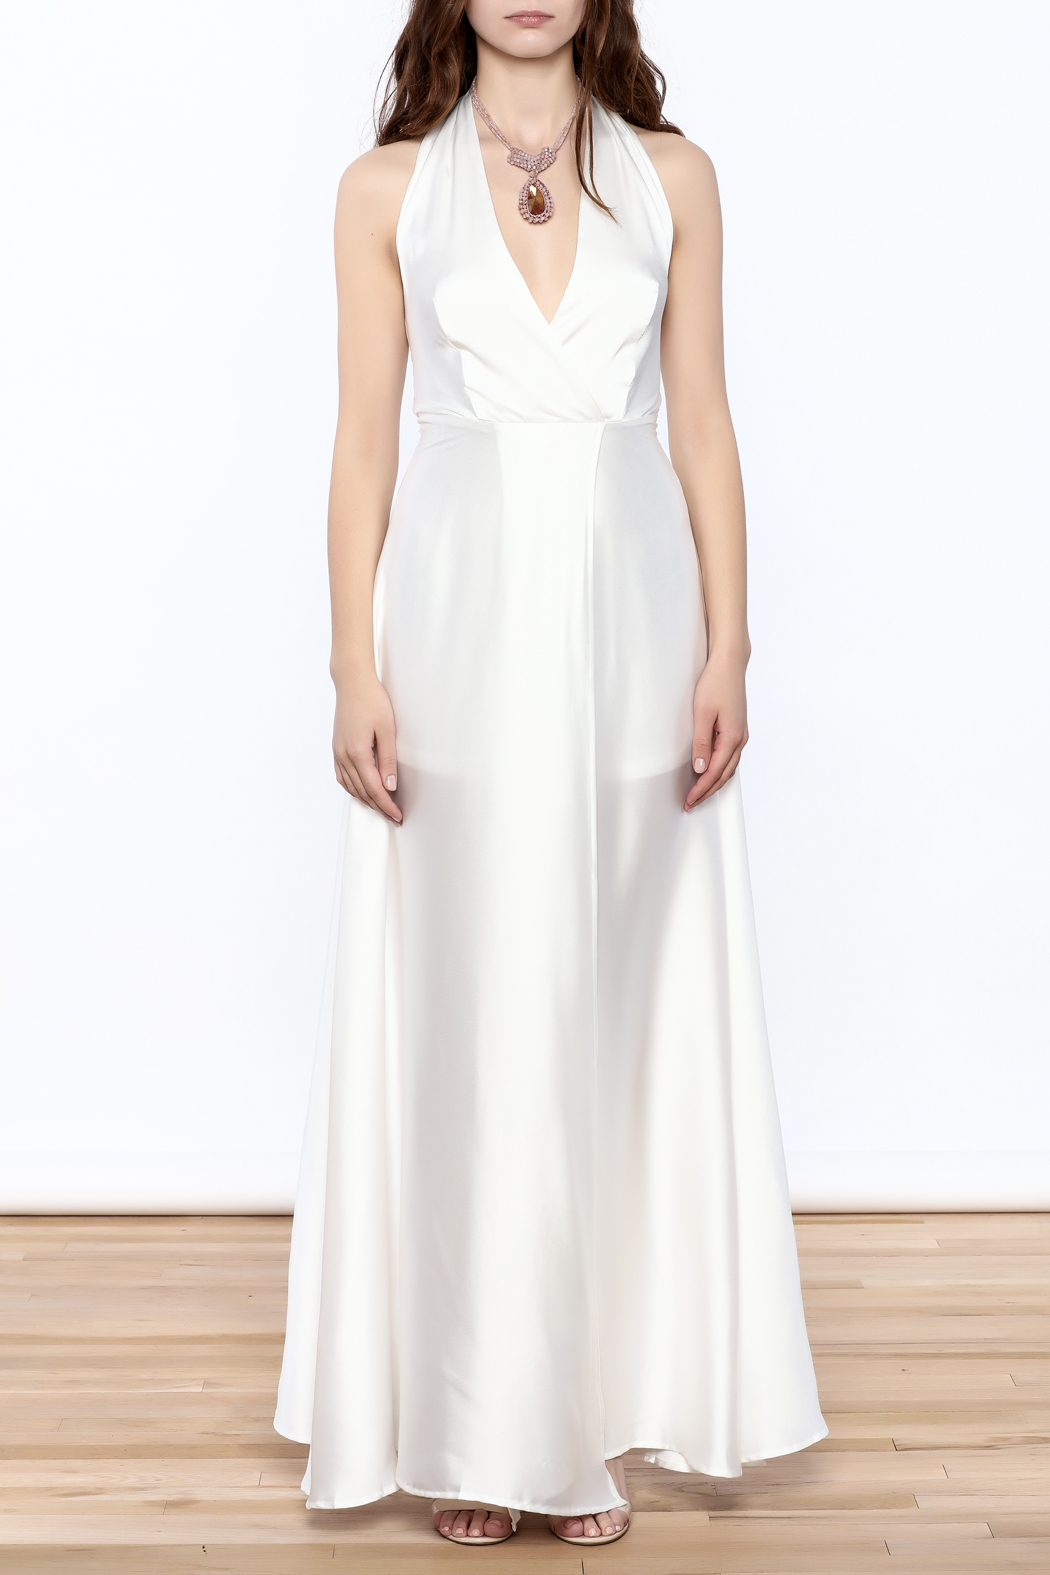 Xtaren White Halter Dress - Front Cropped Image